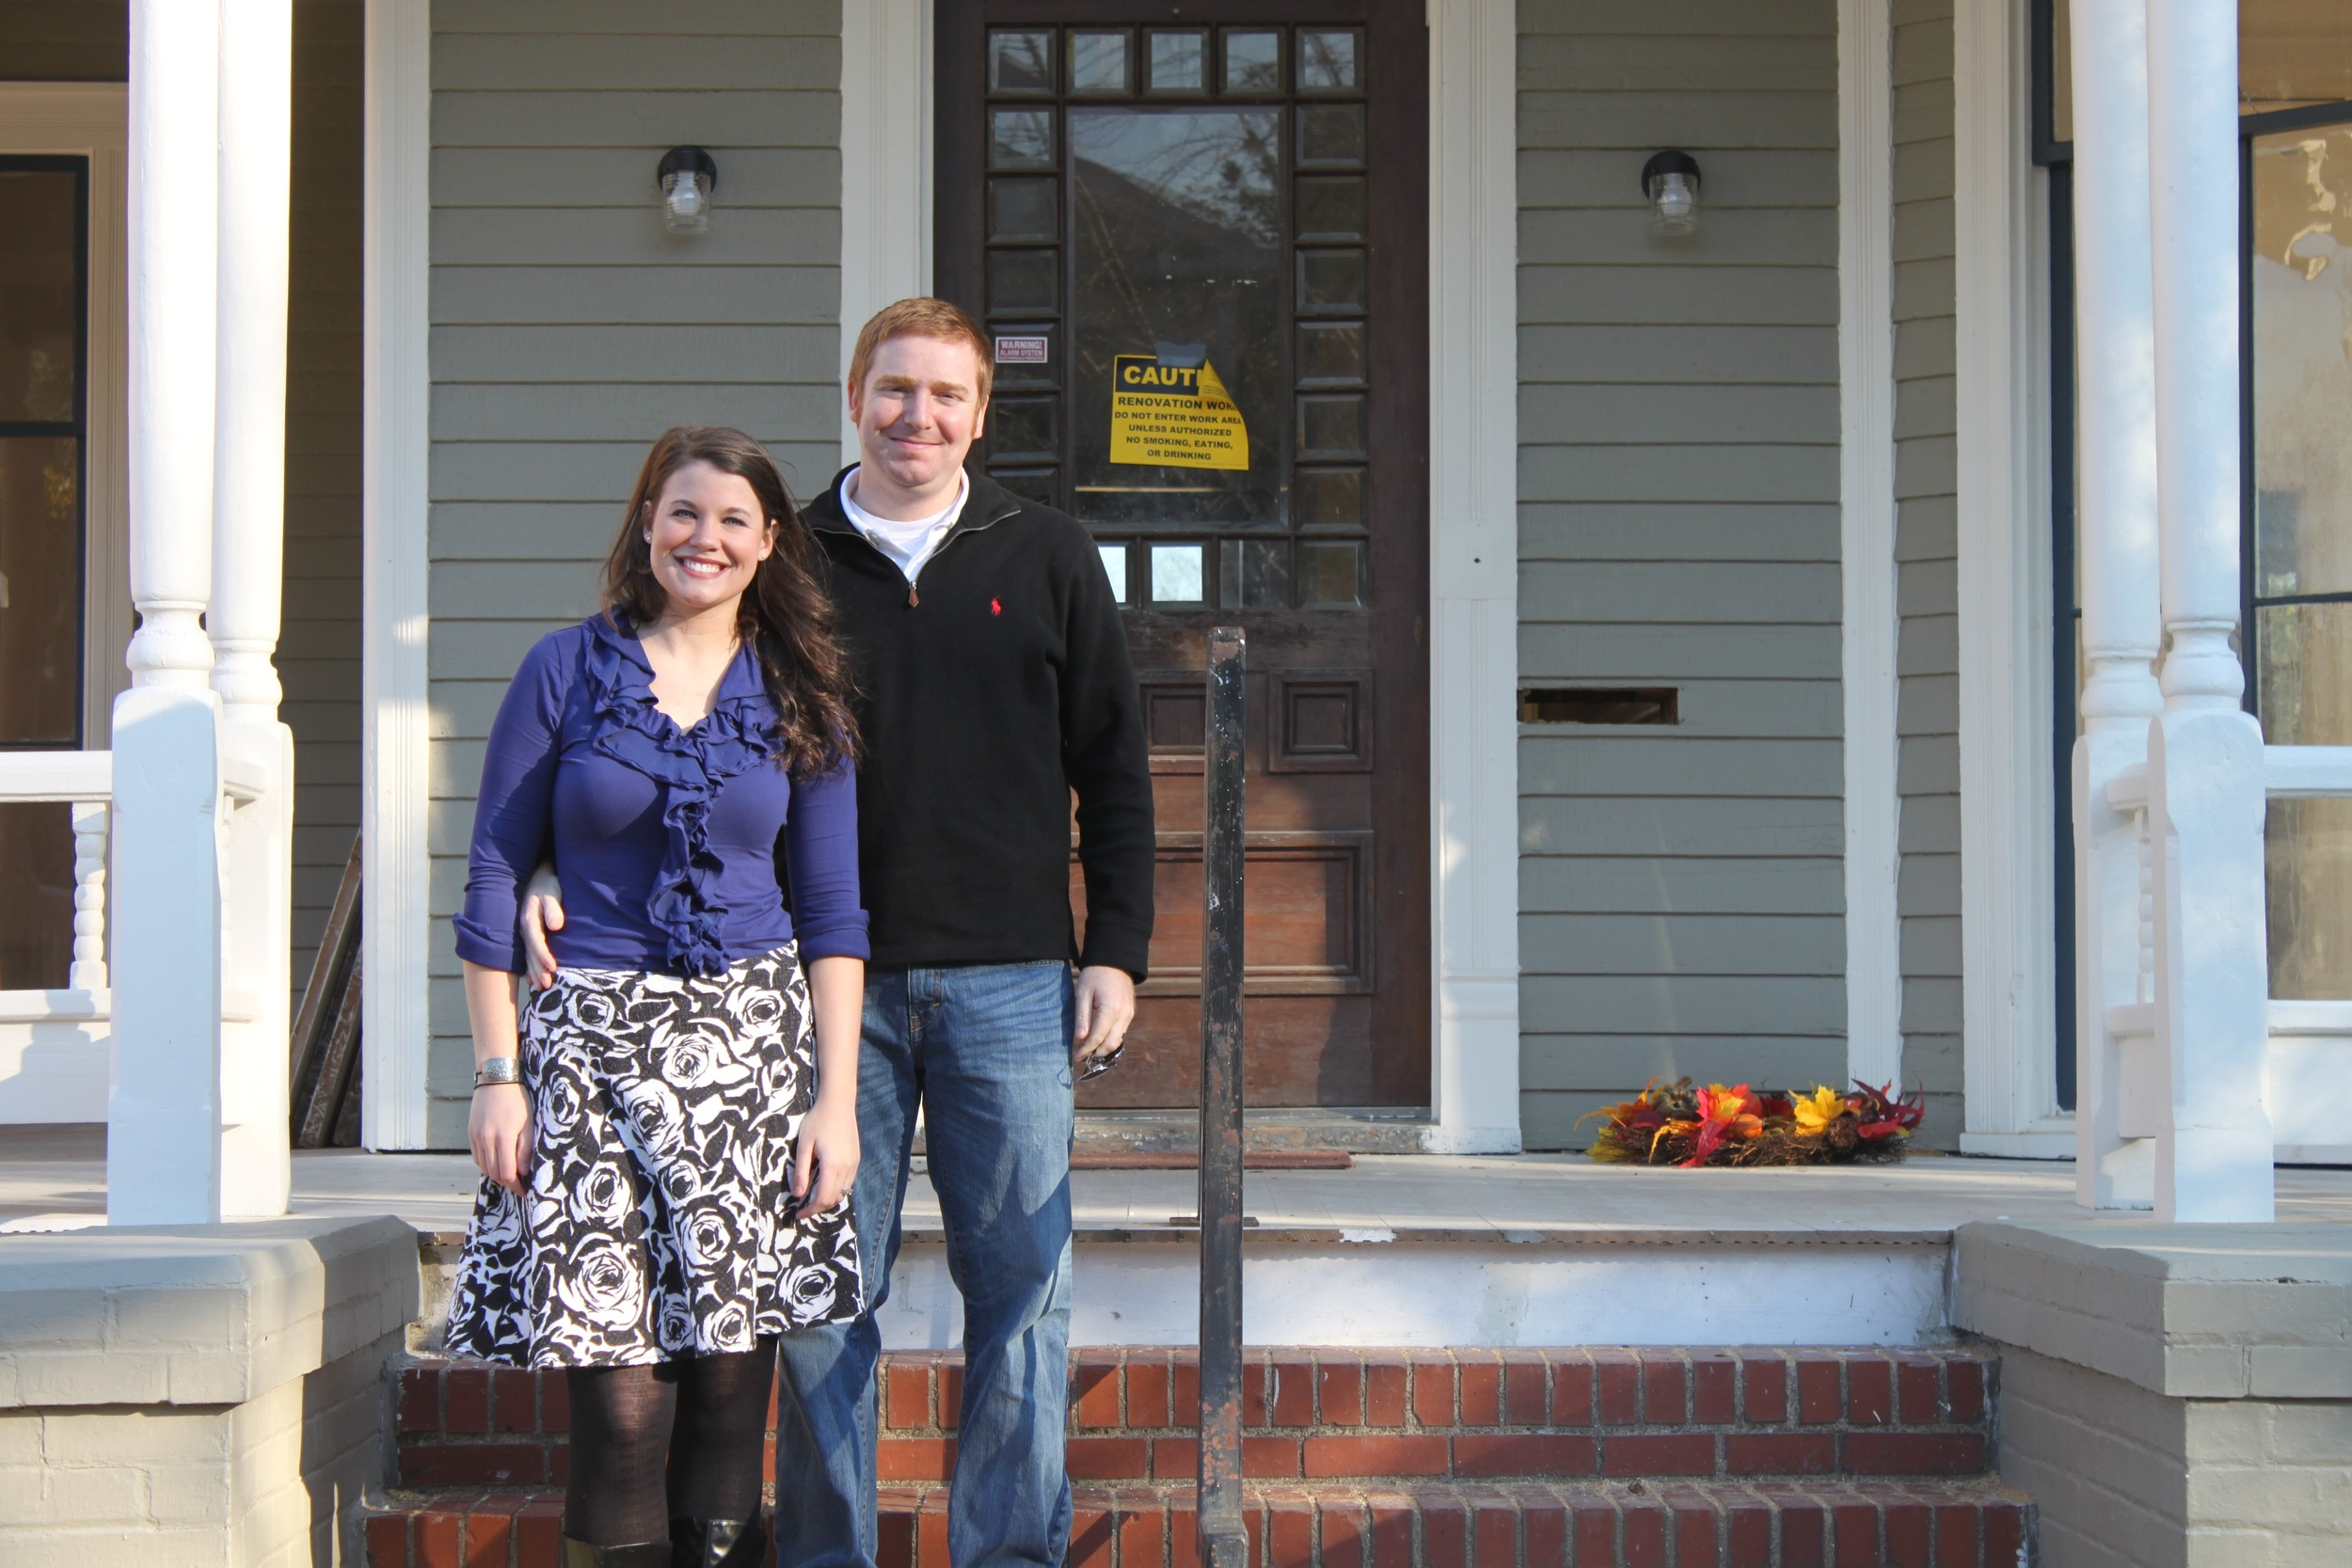 Heather and Andy purchased their home from Historic Macon after it served as the Decorators' Showhouse in 2011.